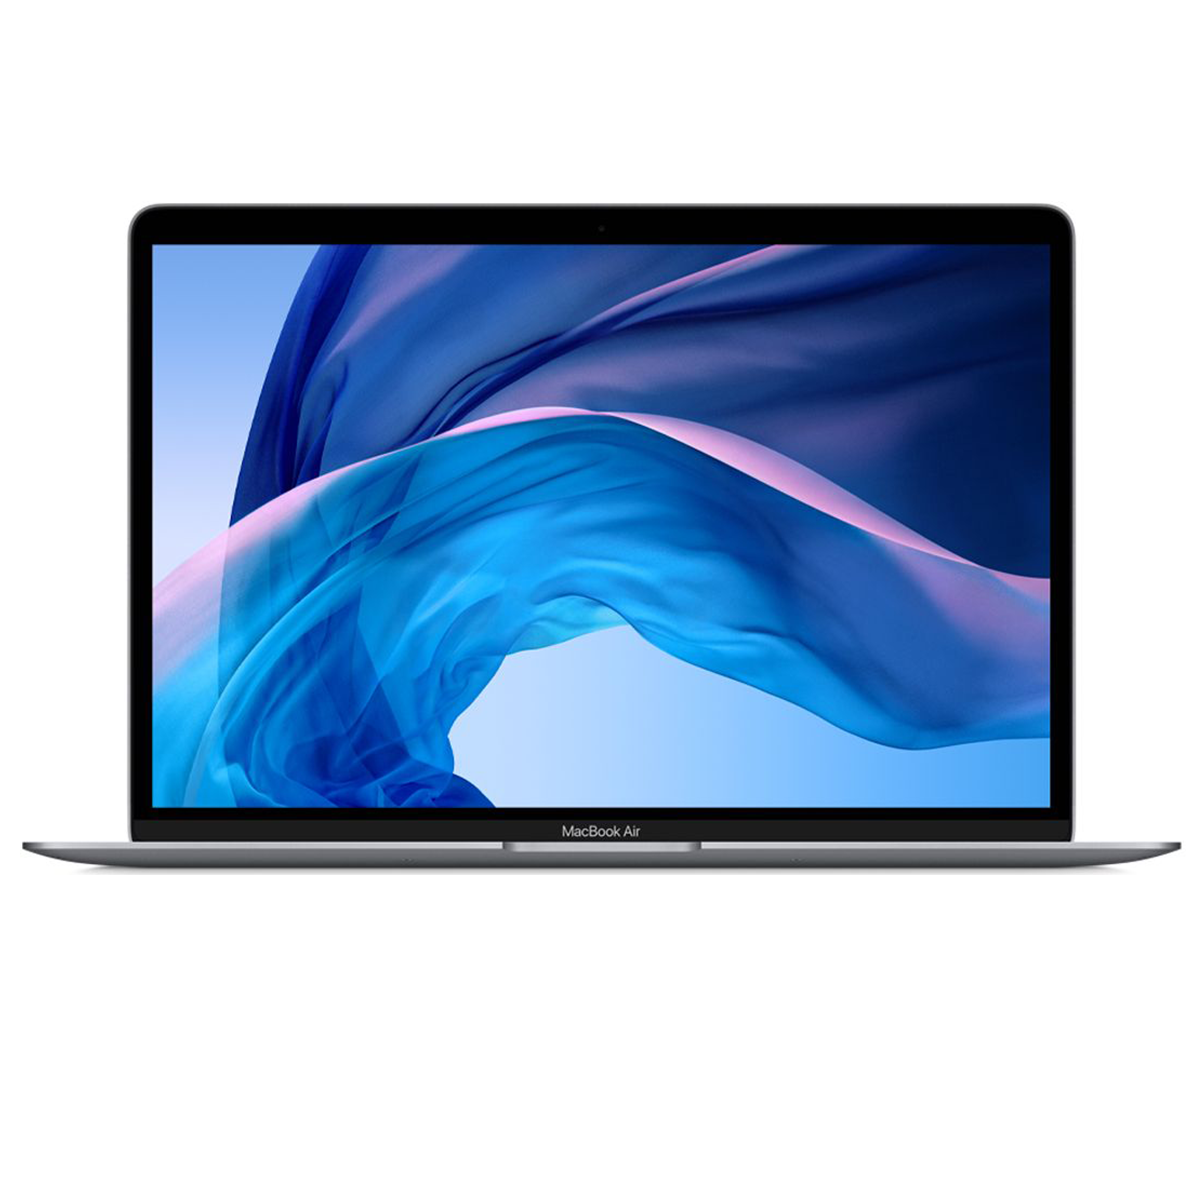 13-inch MacBook Air - Space Gray 512GB SSD